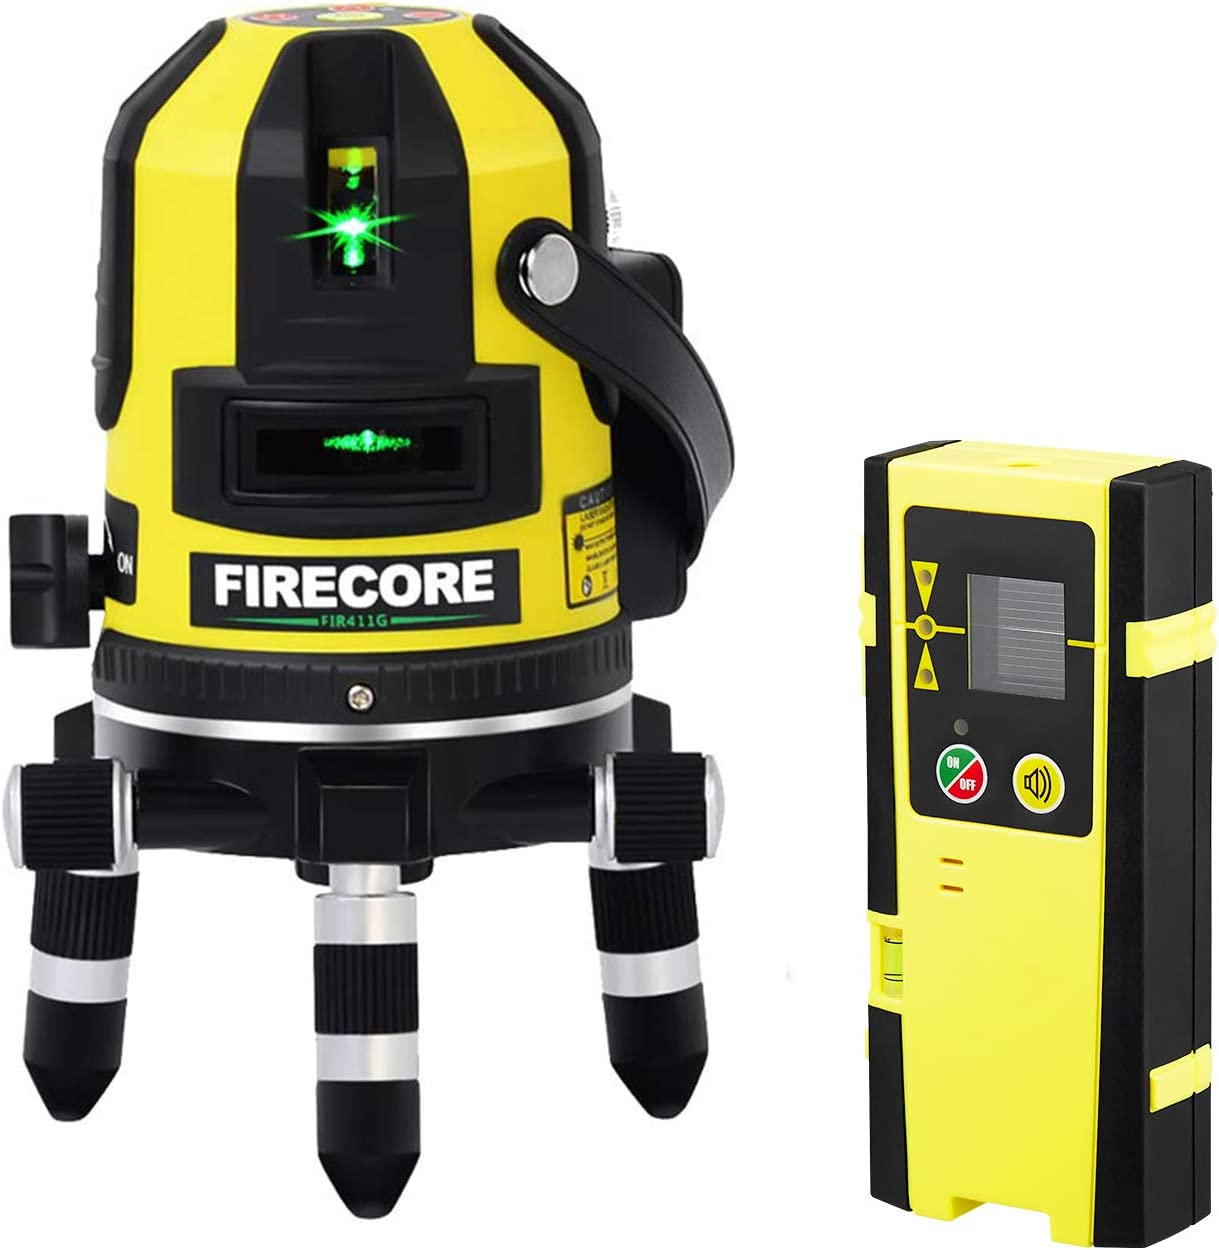 Firecore FIR411G Self-Leveling 50m Outdoor 5 Line Laser Level and Plumb Point with Detector, Green